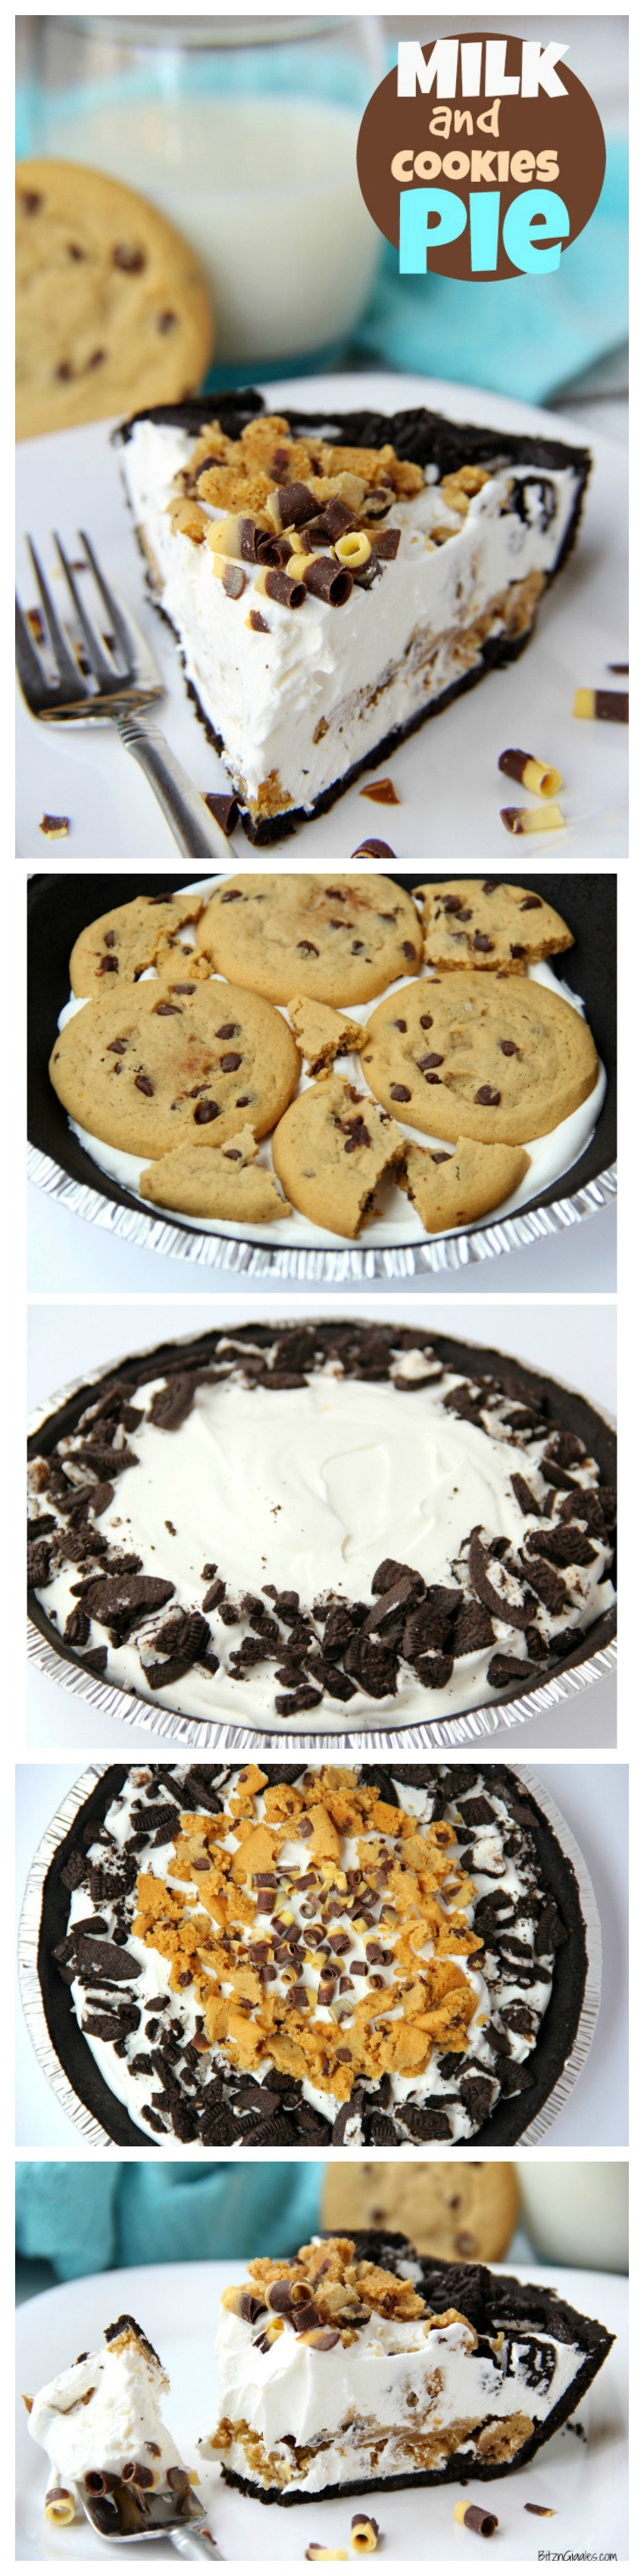 Milk and Cookies Pie - A five-ingredient no-bake pie loaded with chewy chocolate chip cookies, cream and Oreos! Comes together in minutes!